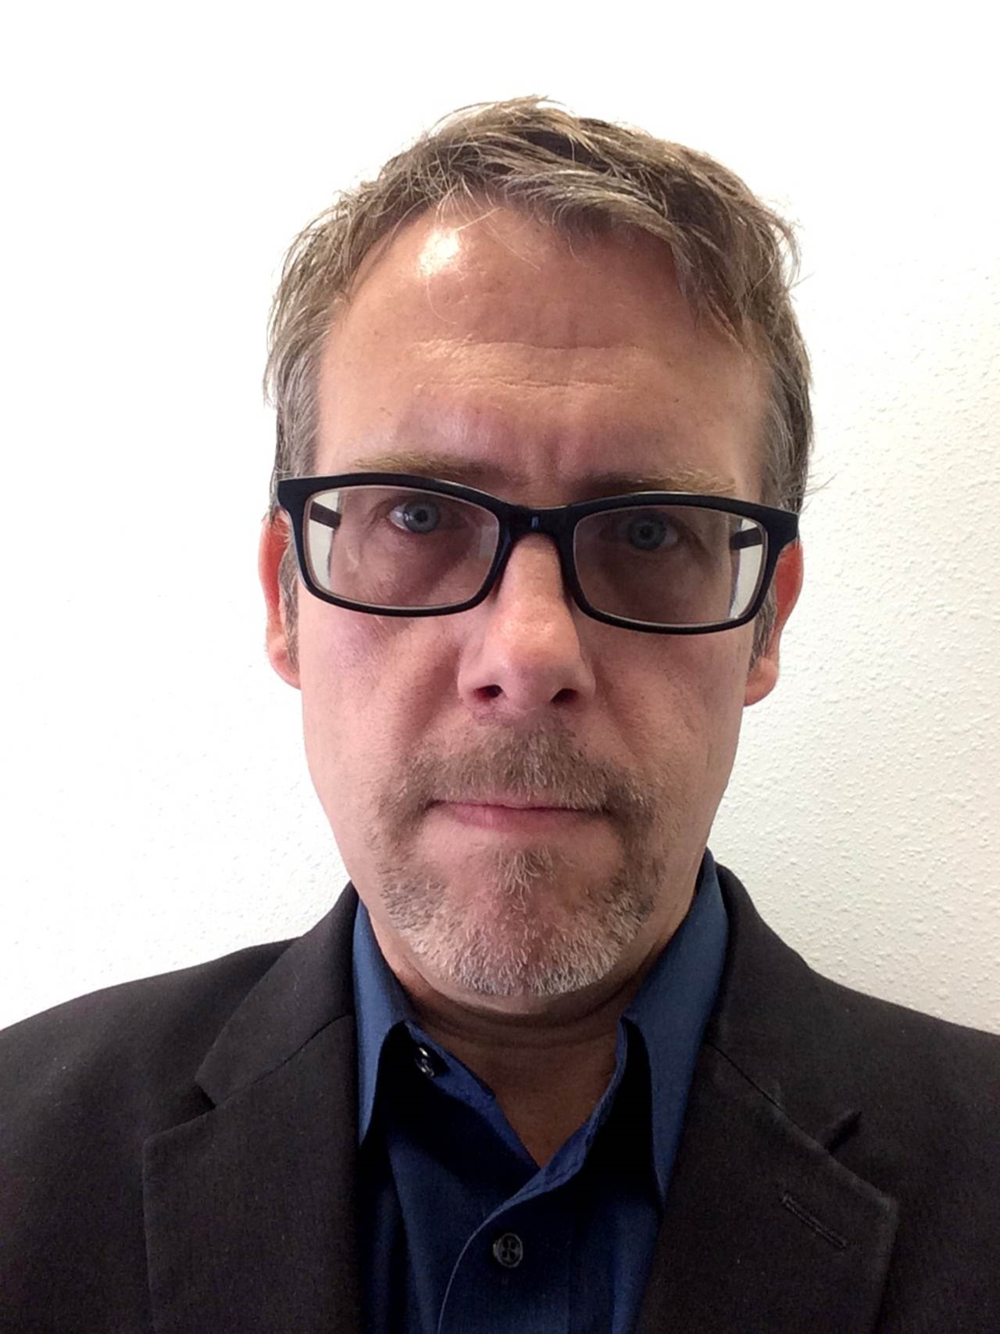 Arts International juror Christian Gerstheimer, EPMA curator.  Read bio